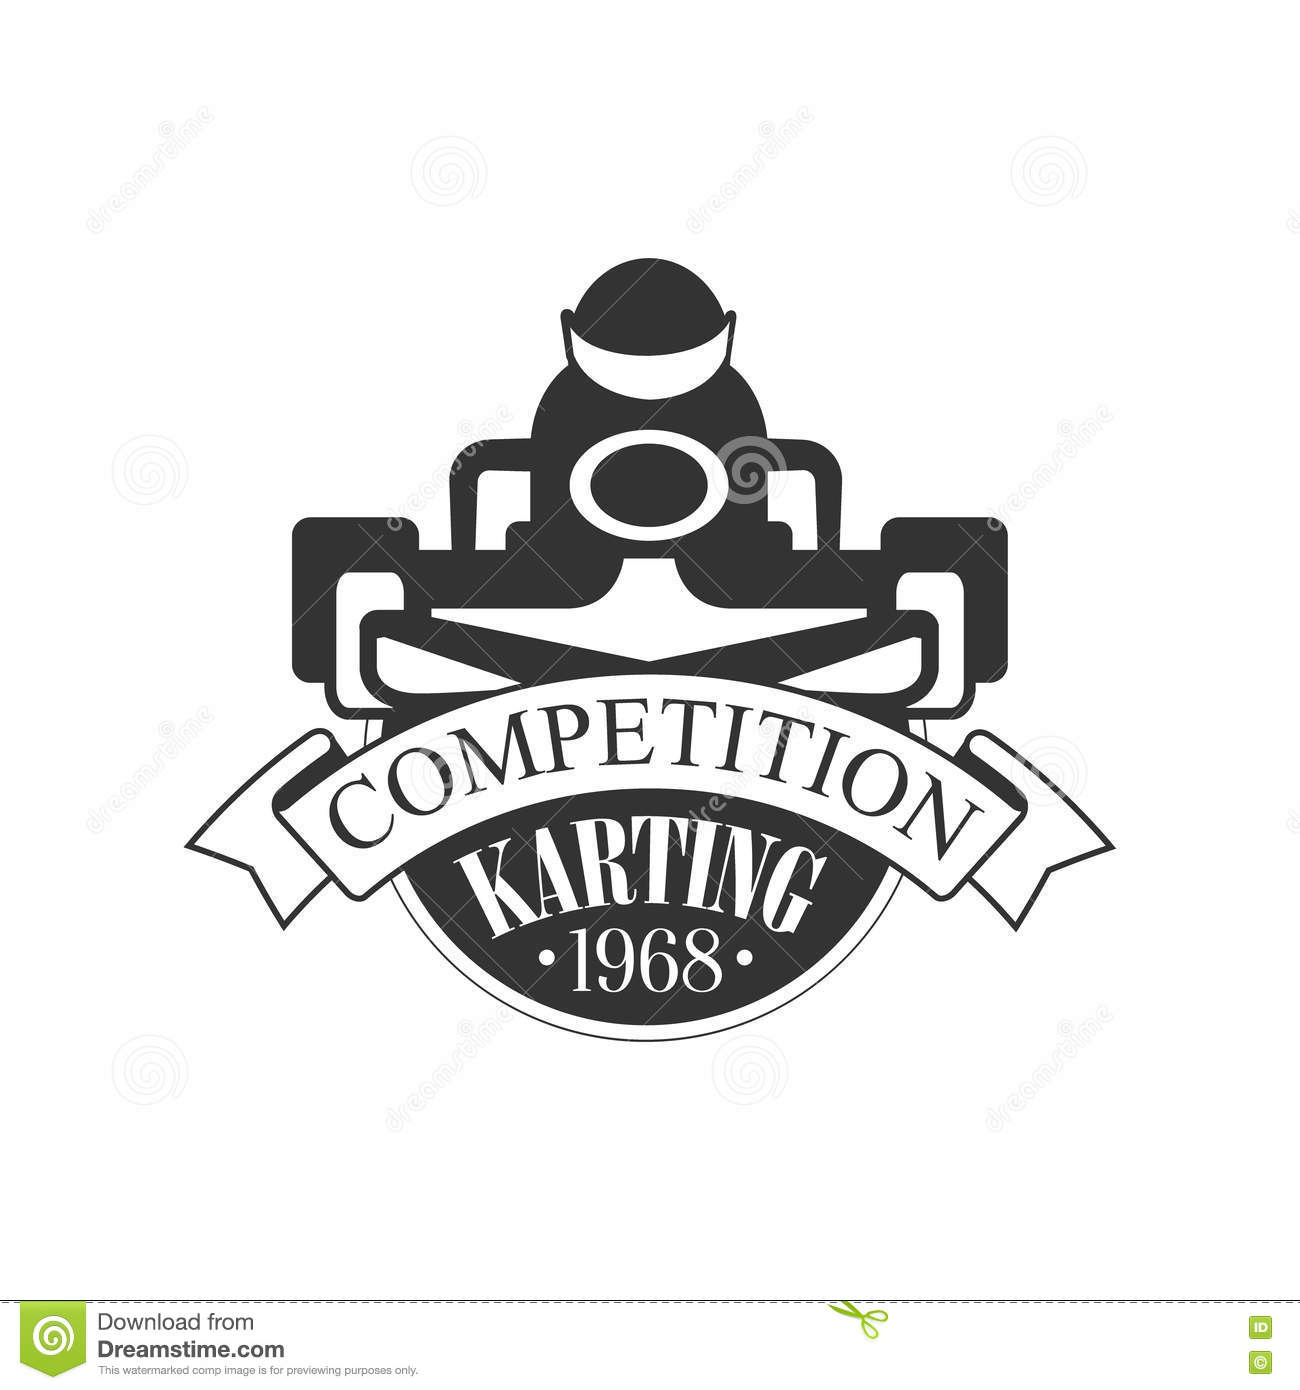 Karting Club Competition Black And White Logo Design